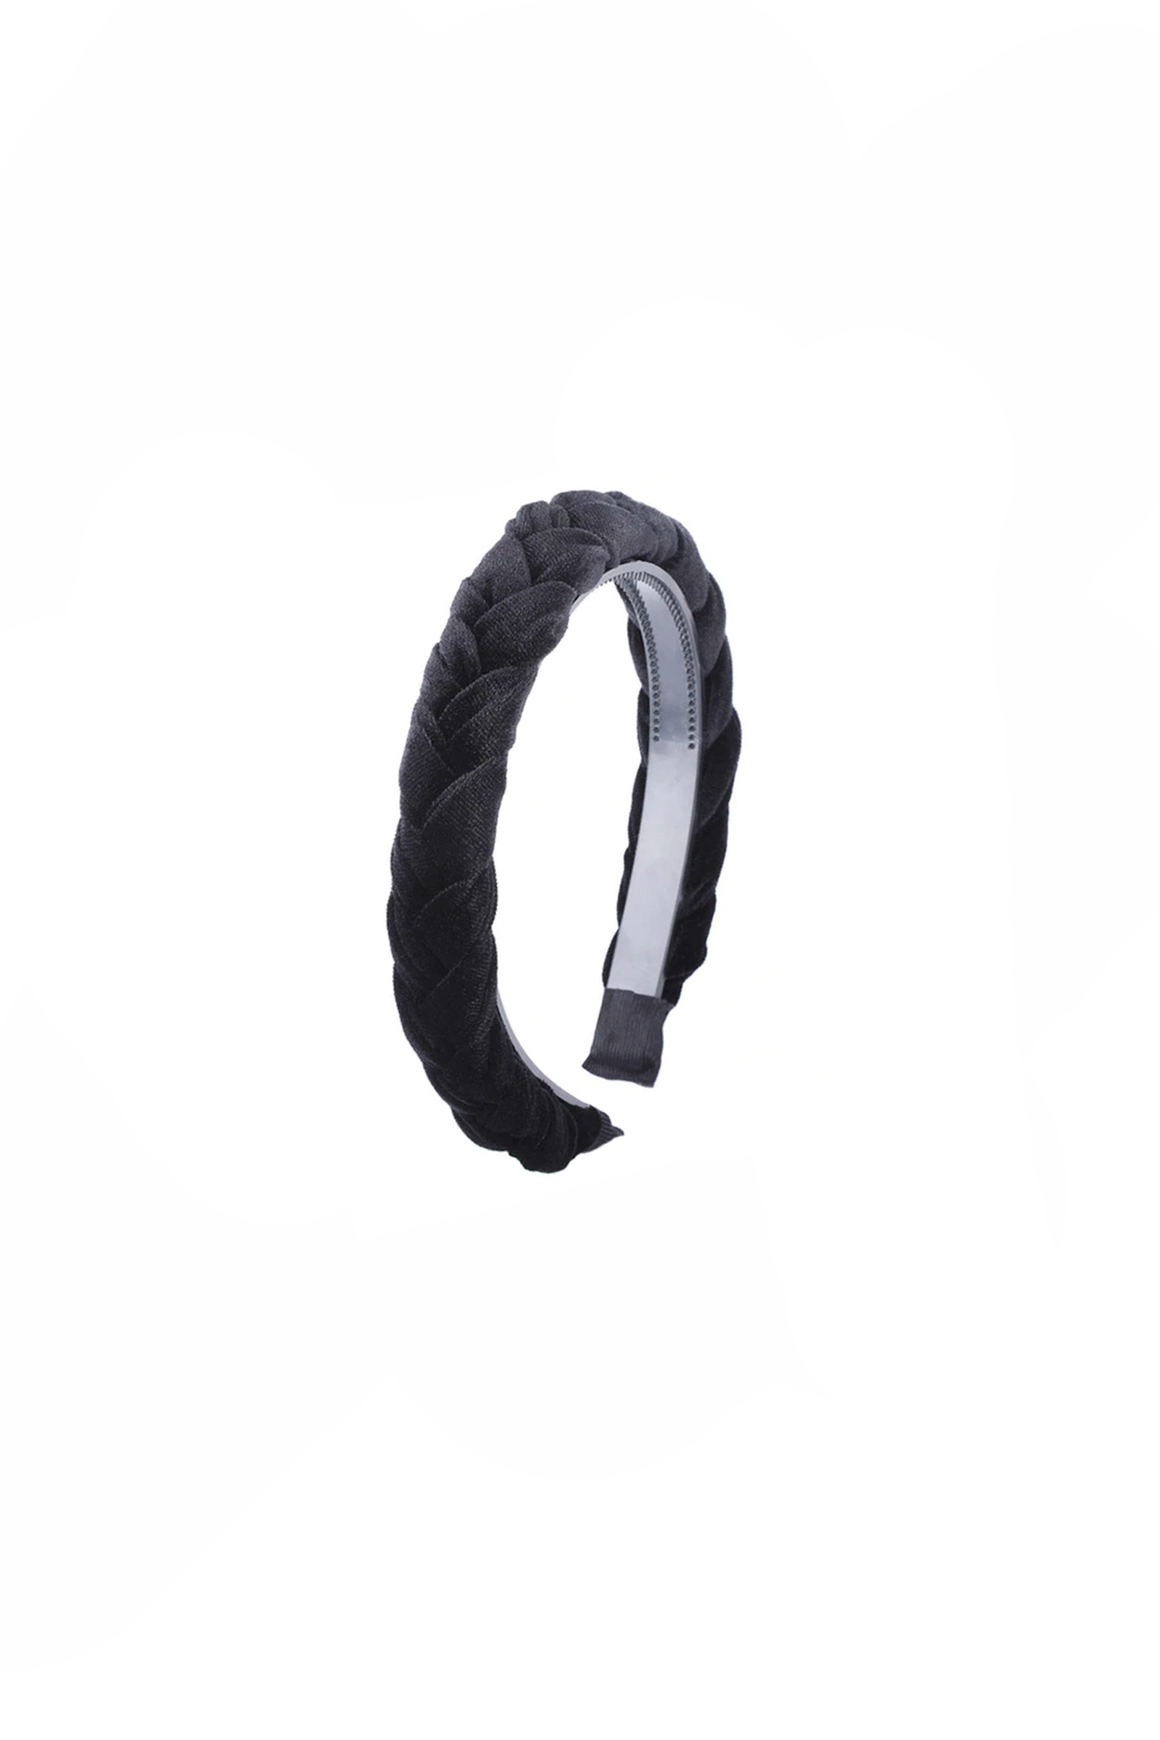 Gretel Slim Hairband - Philistine